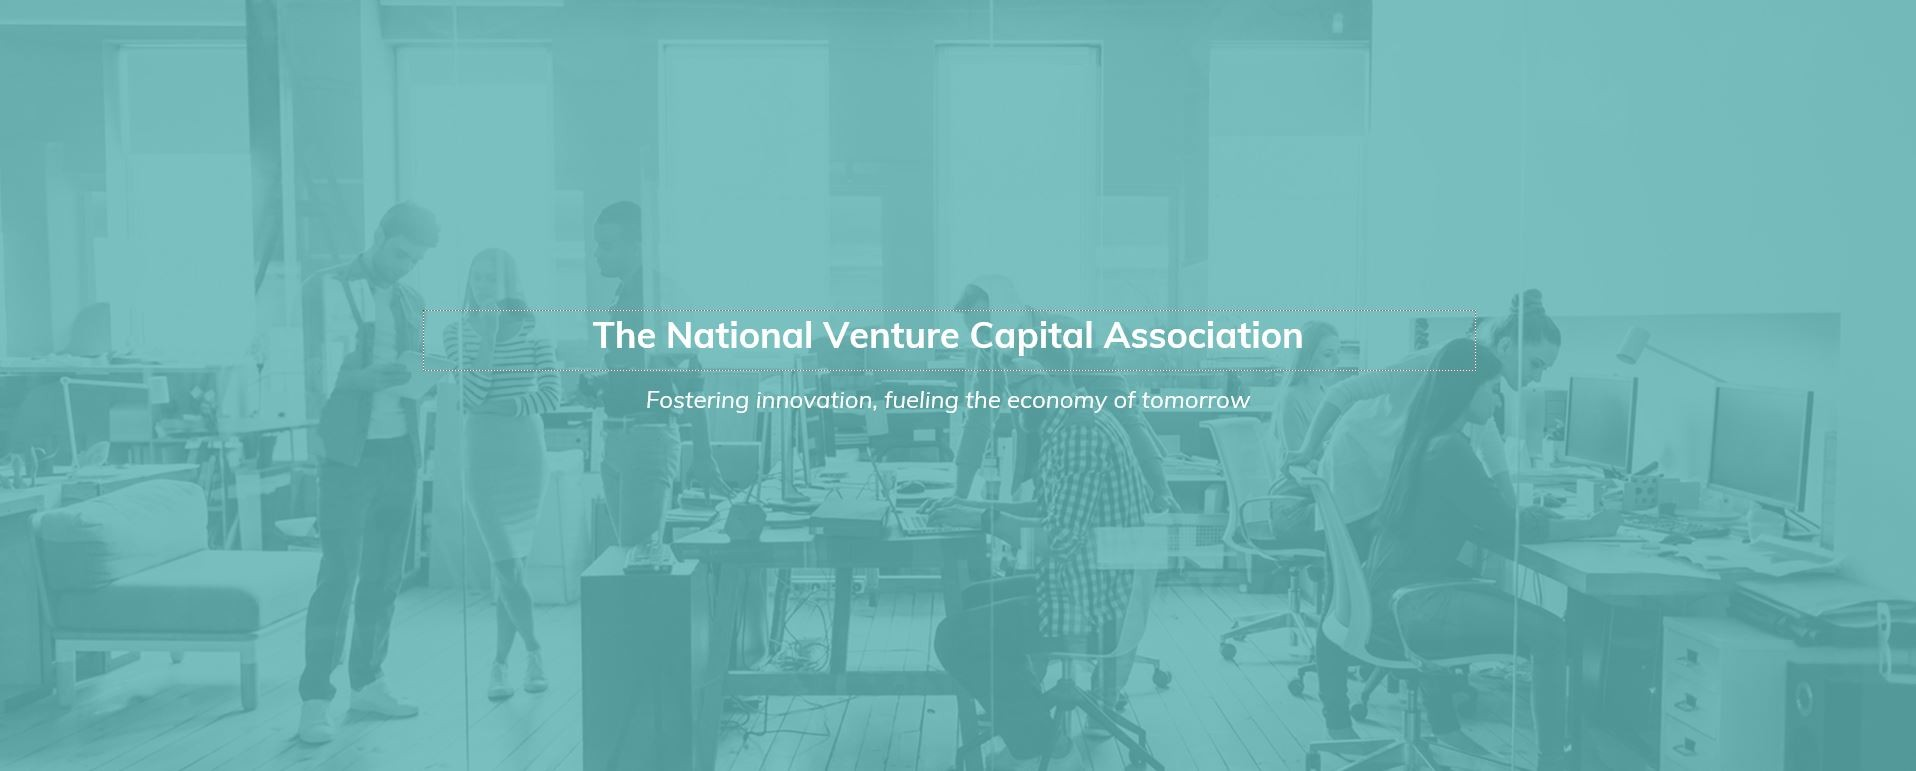 The National Venture Capital Association